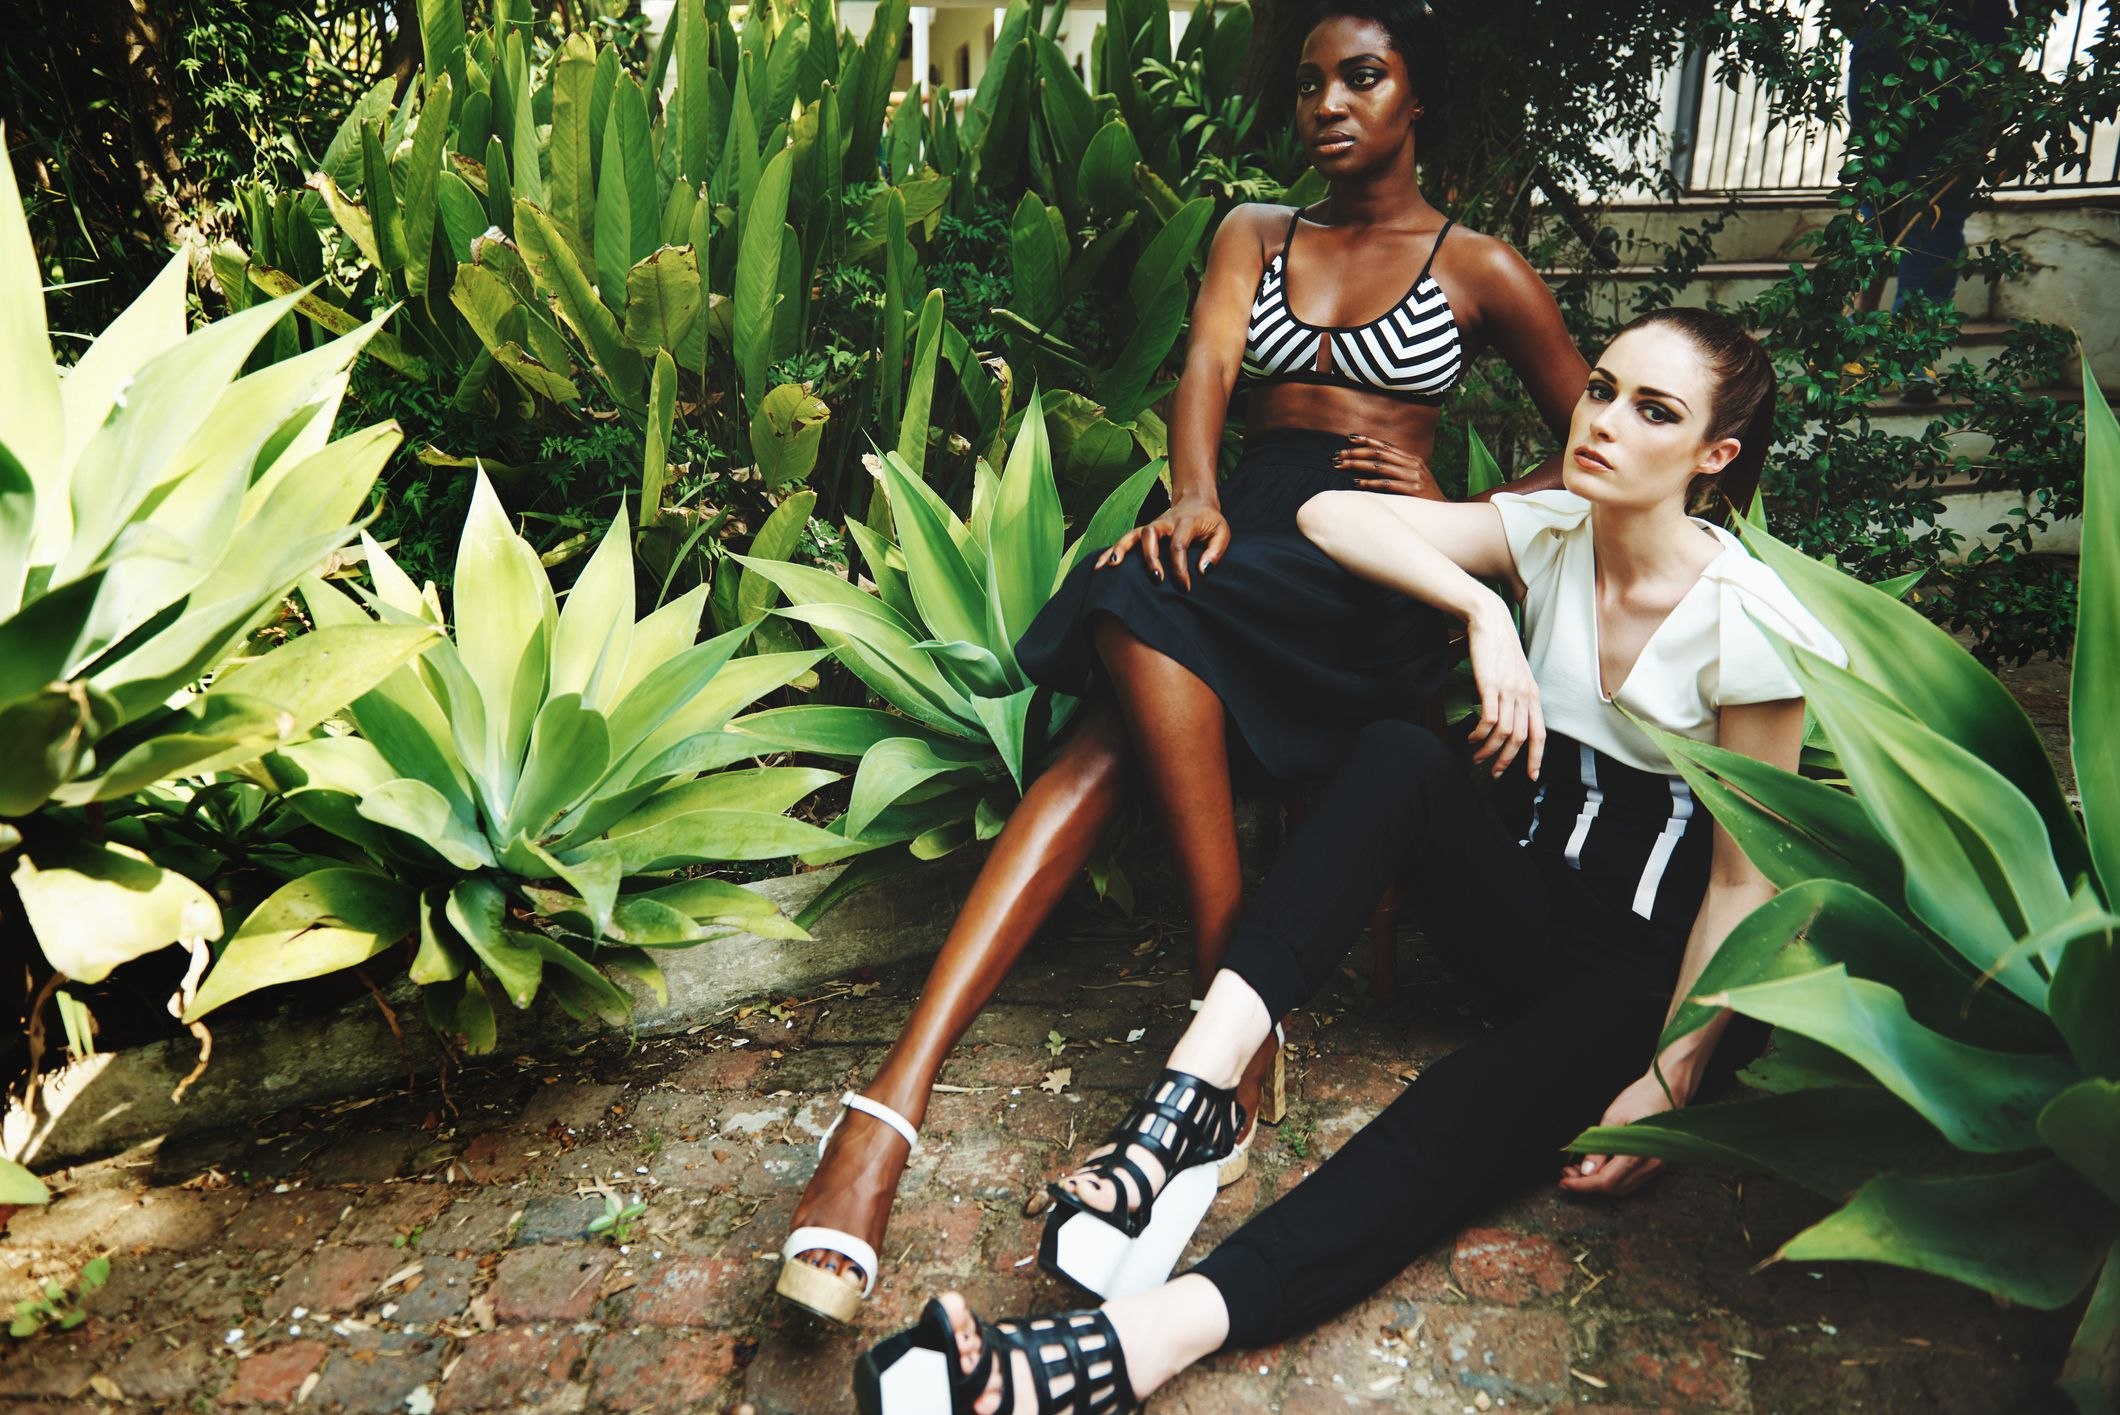 Five Things a Legitimate Modeling Agency Will Never Ask of You